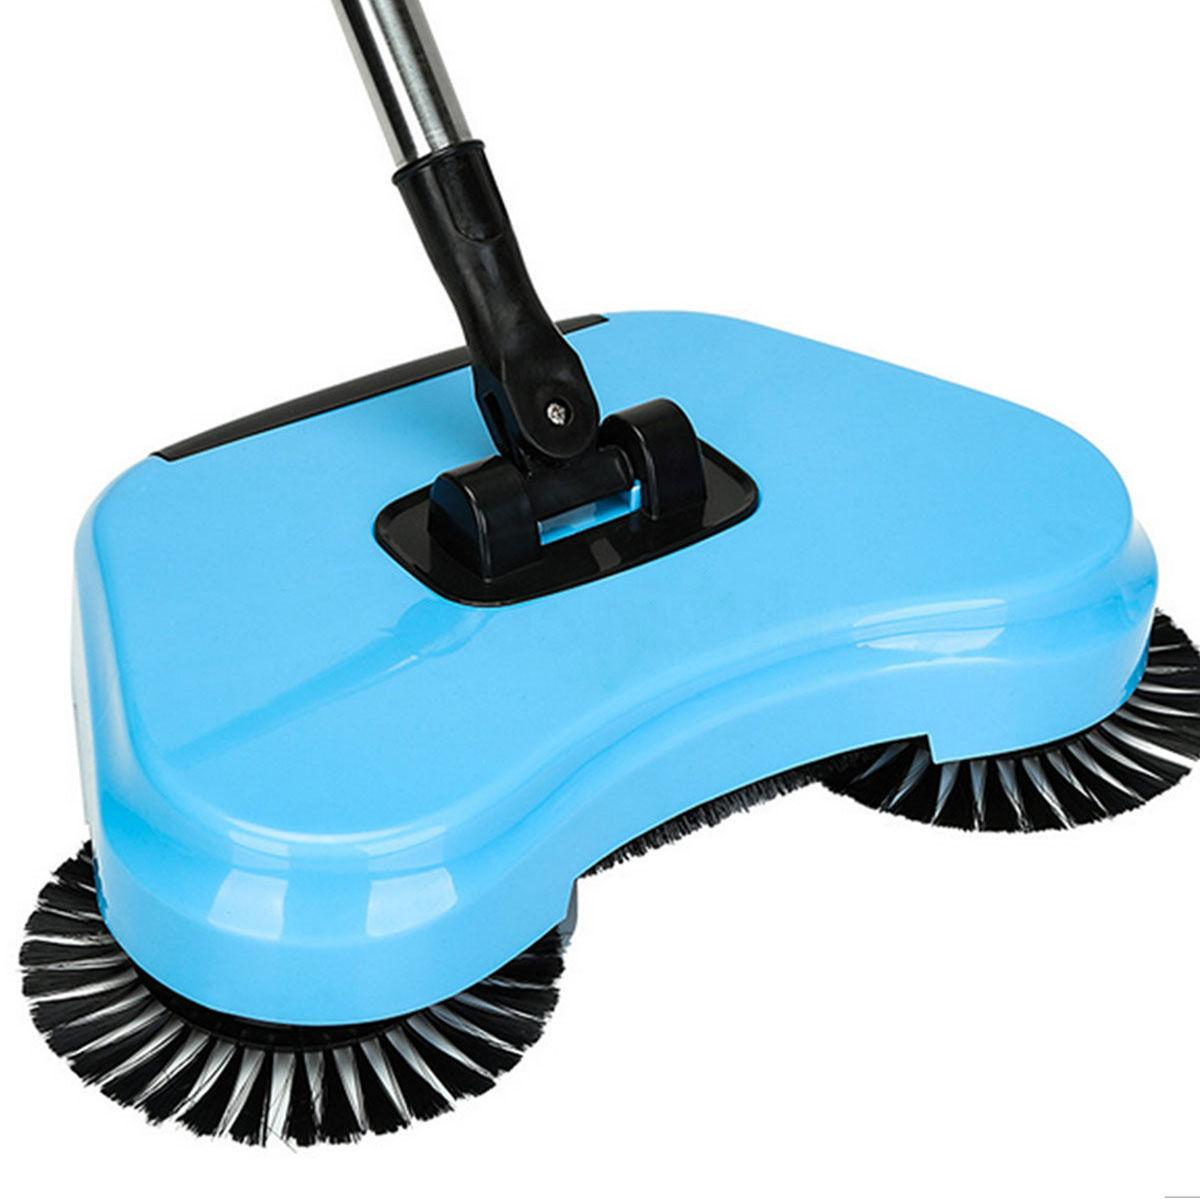 Spin Broom Household Mop